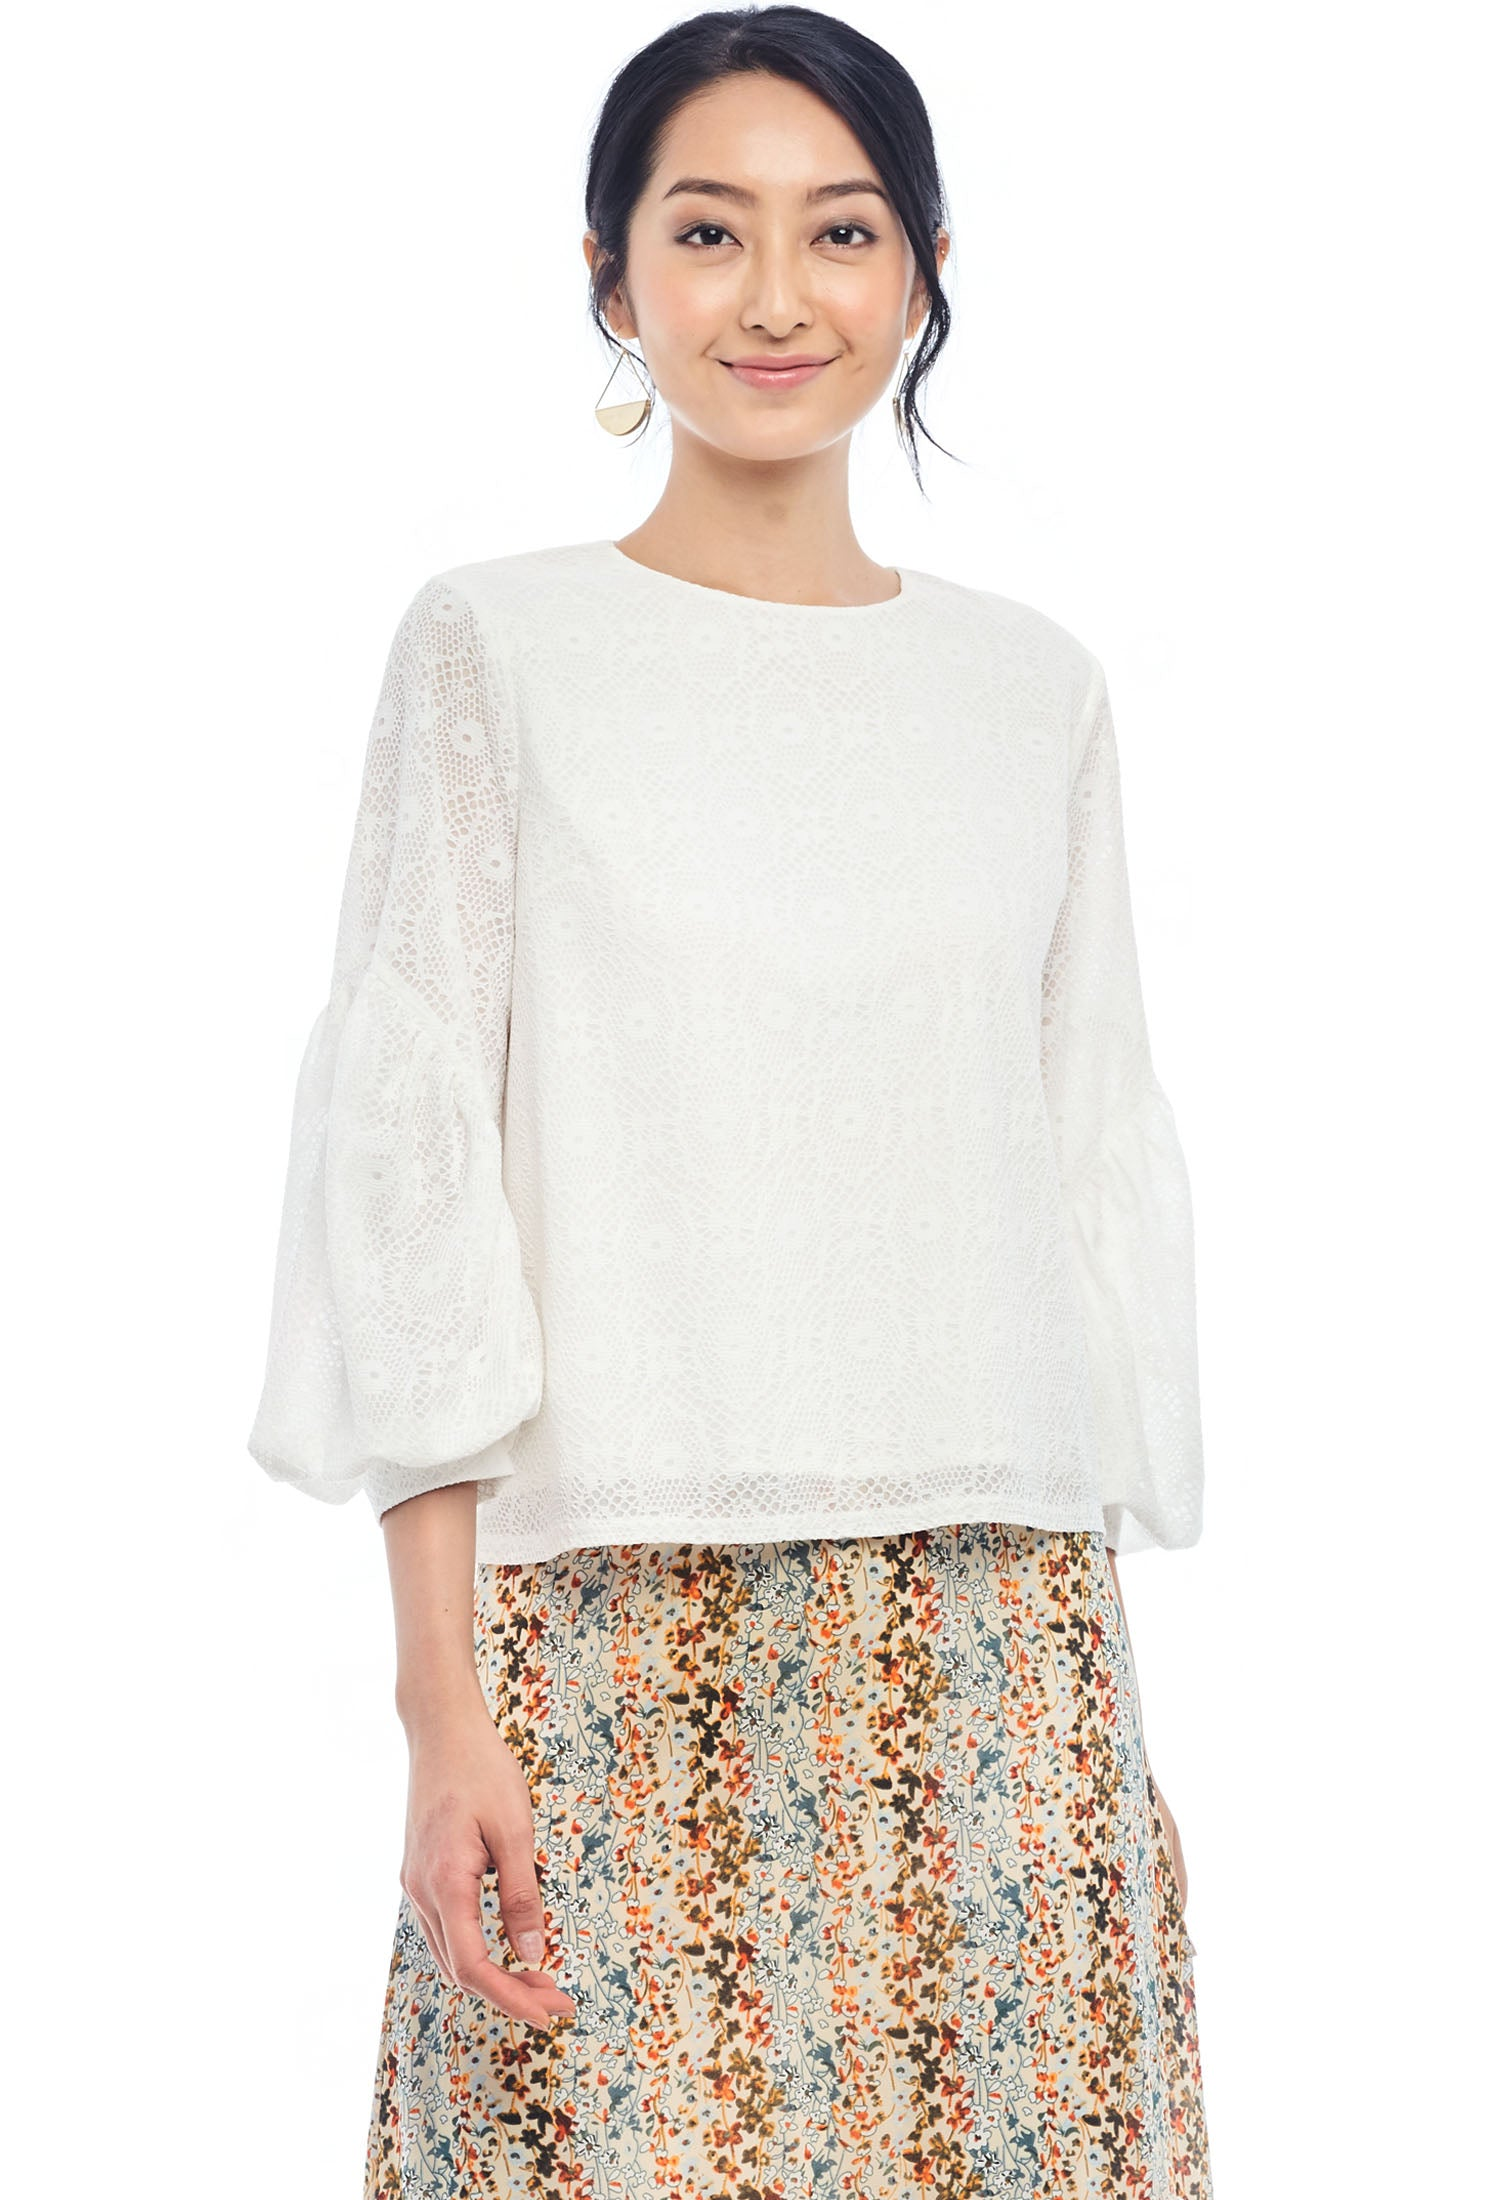 Patterned Knit Trumpet Sleeve Blouse